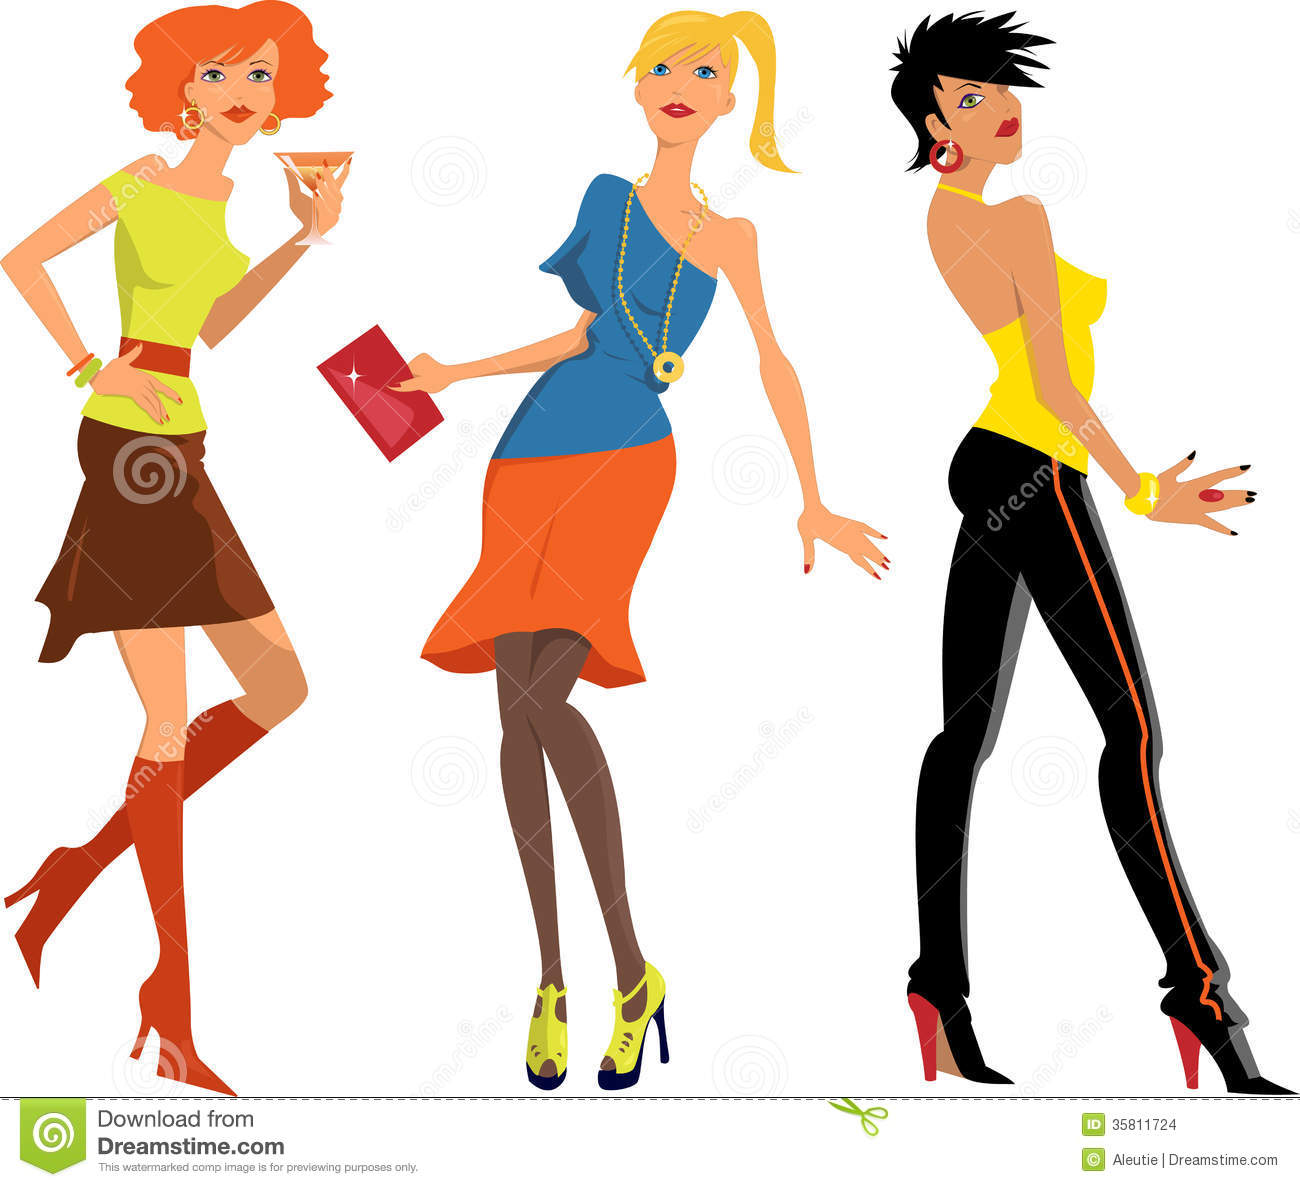 3 Girl Cartoon Characters : Three girls at the party stock vector illustration of